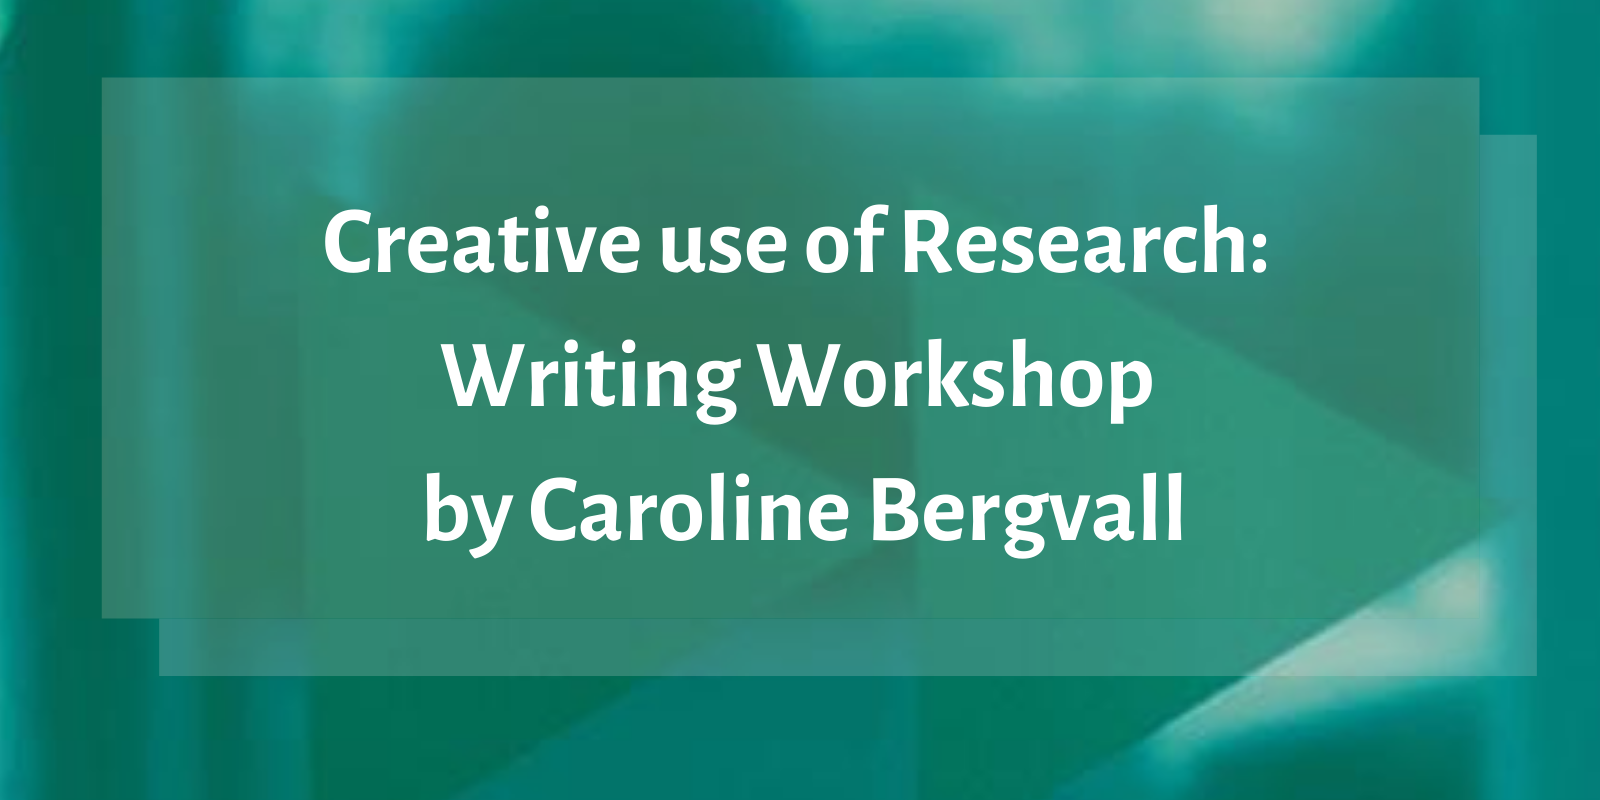 Workshop: Creative use of Research with Caroline Bergvall